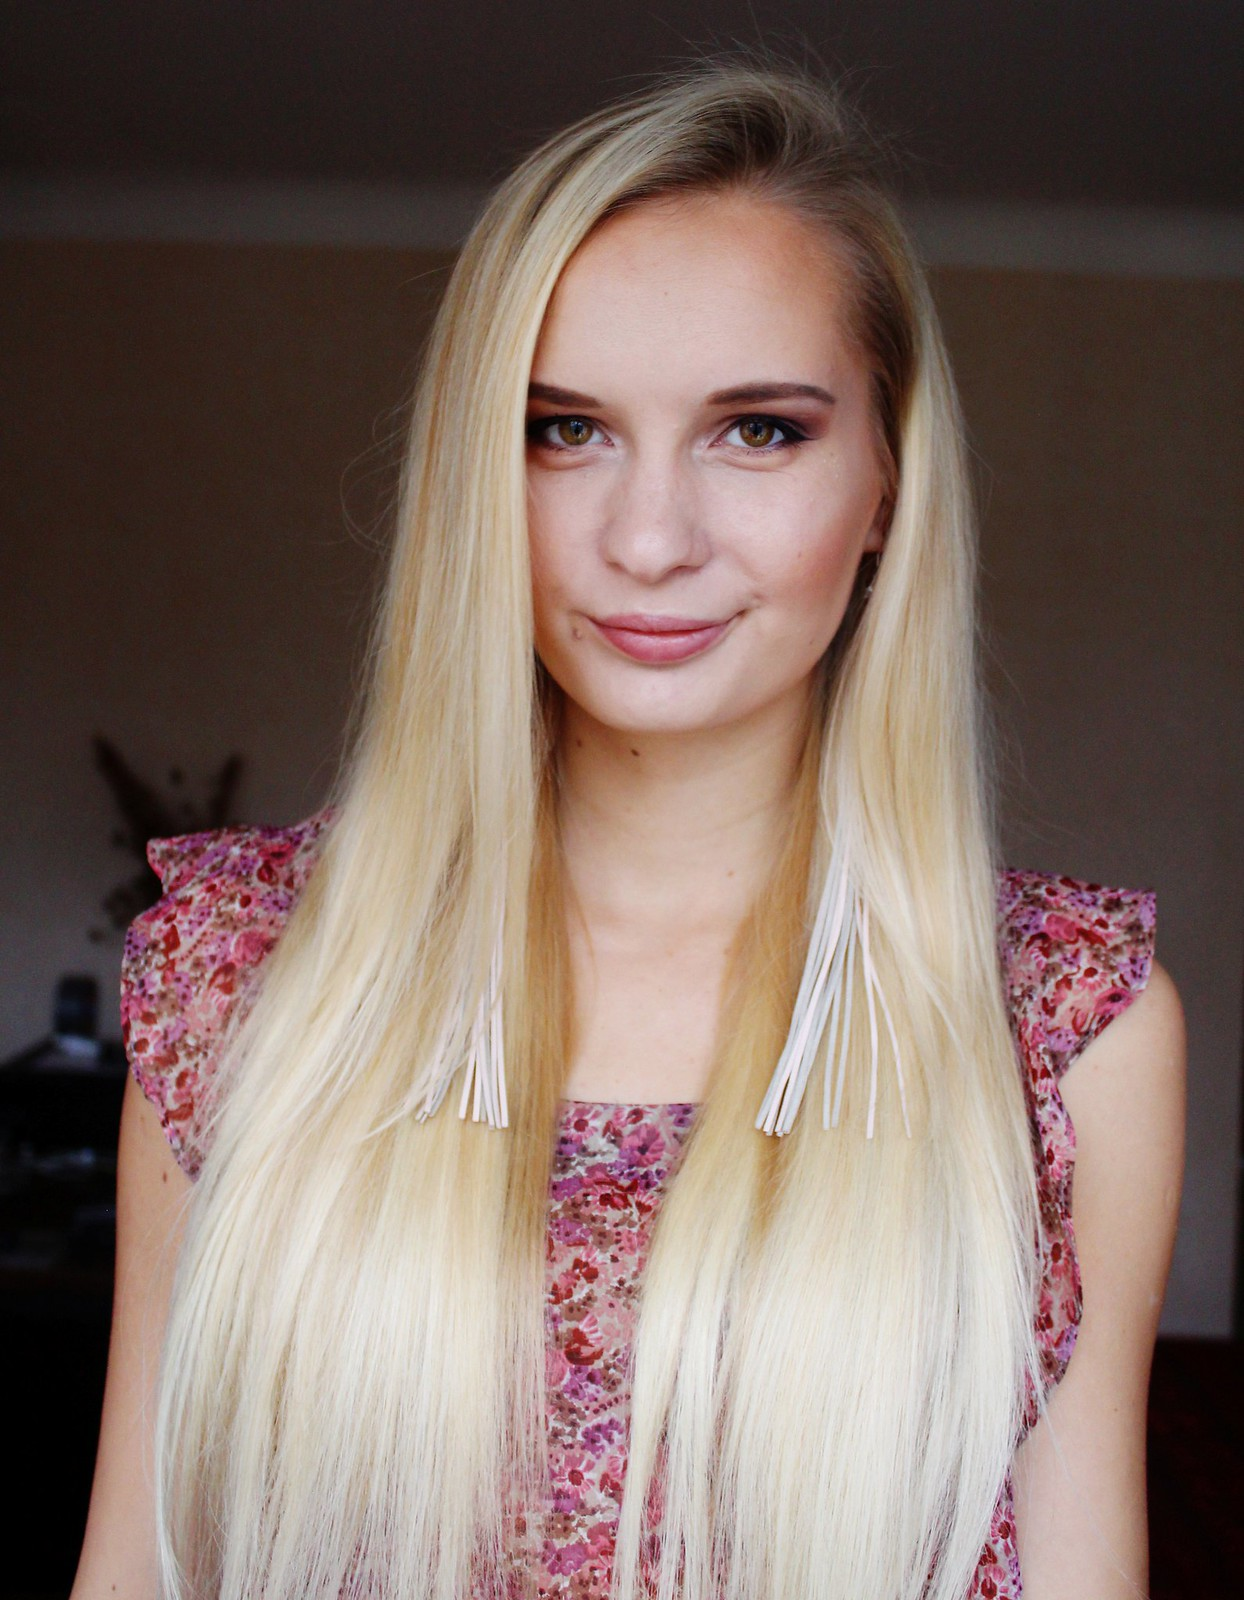 Clip in hair extension review